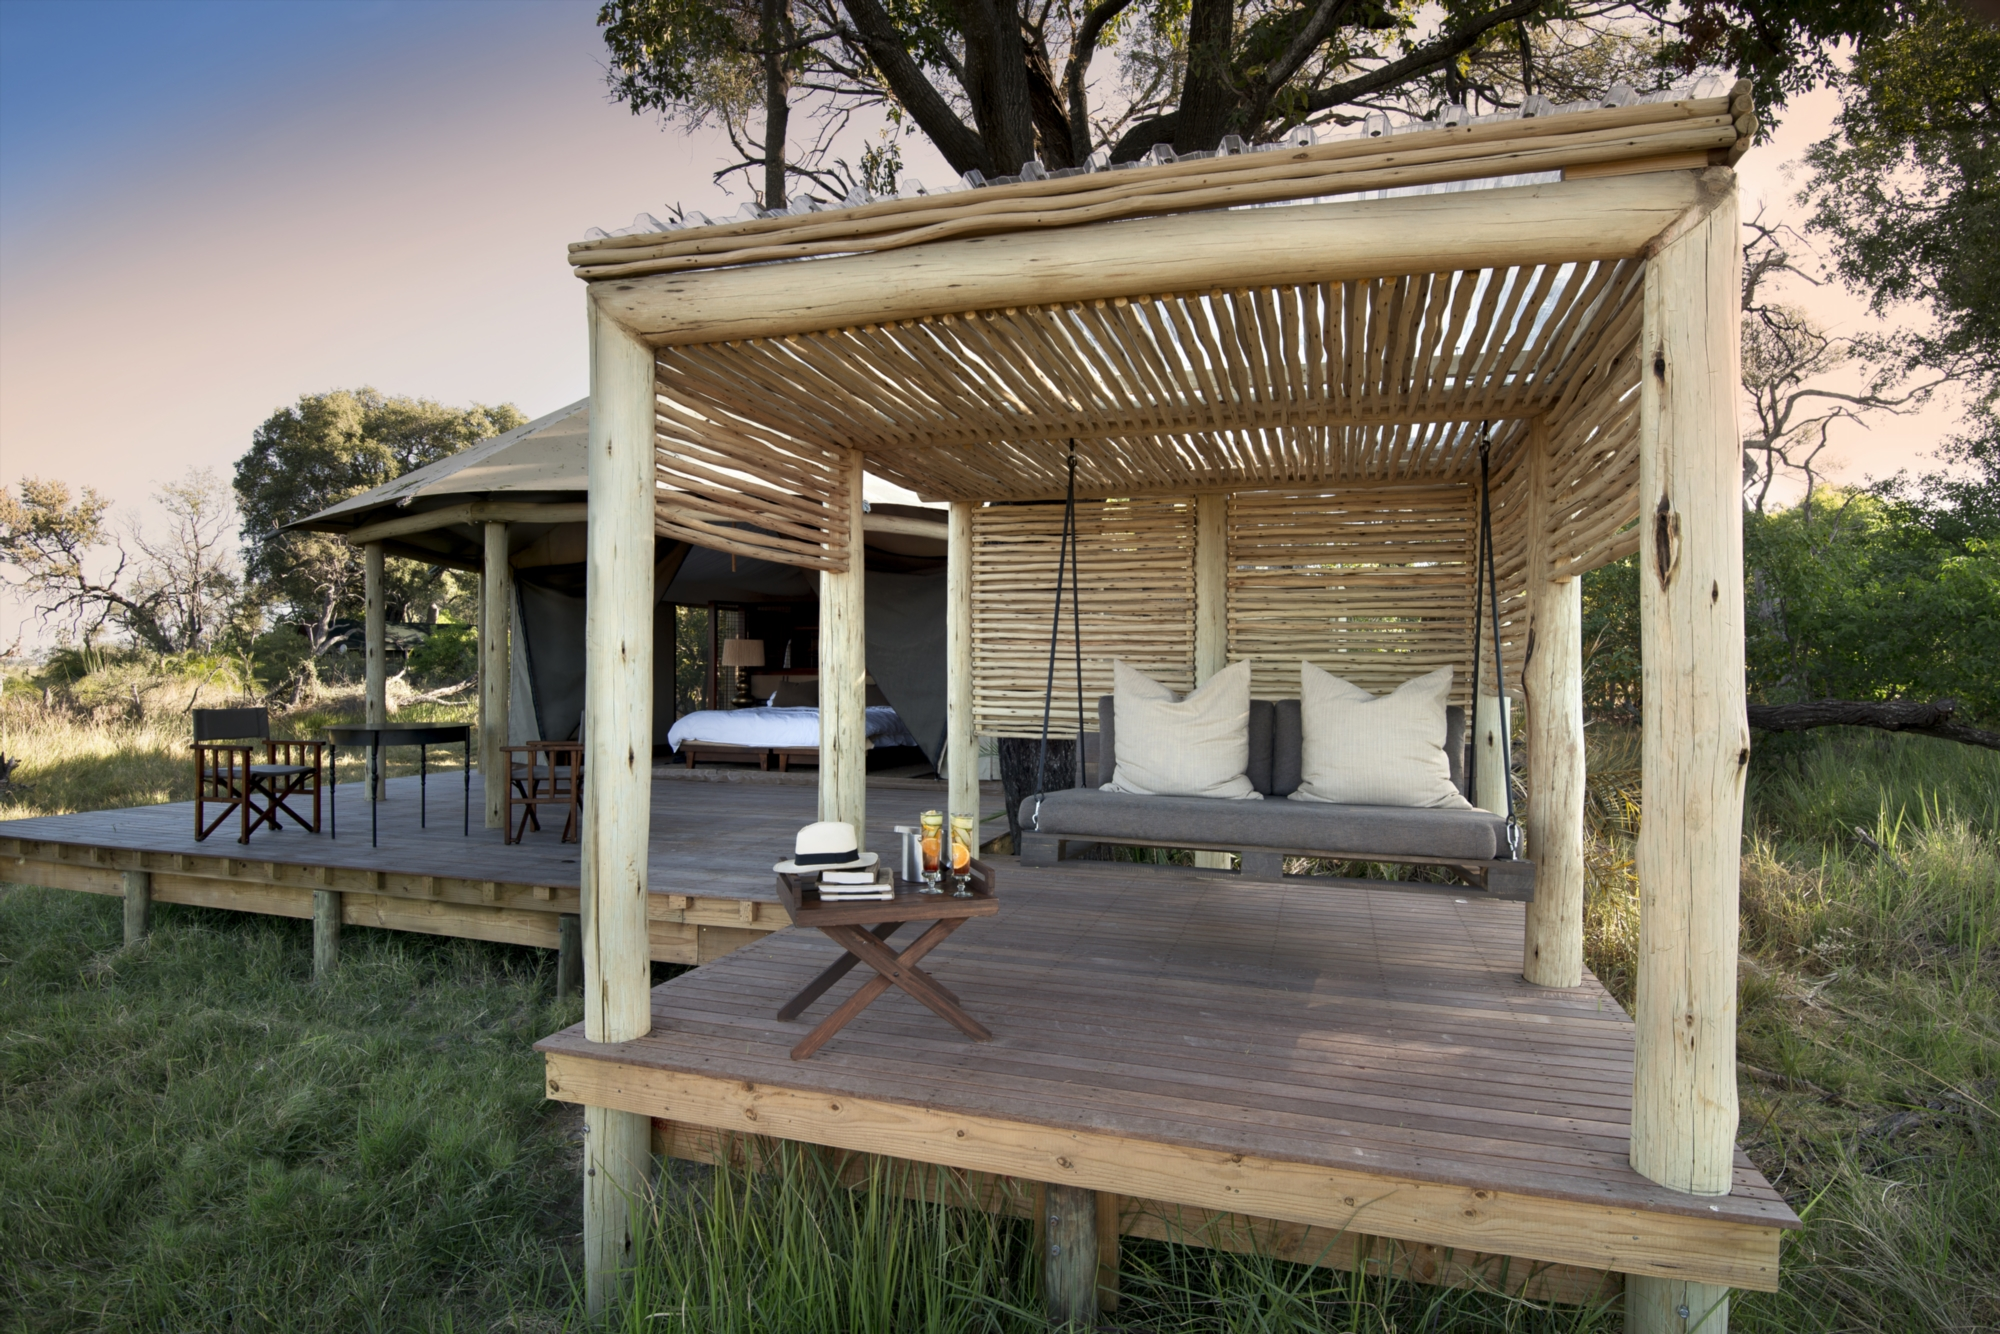 andBeyond-Nxabega-Okavango-Tented-C&-Private-Sala & Nxabega Okavango Tented Camp - Journeys by Design